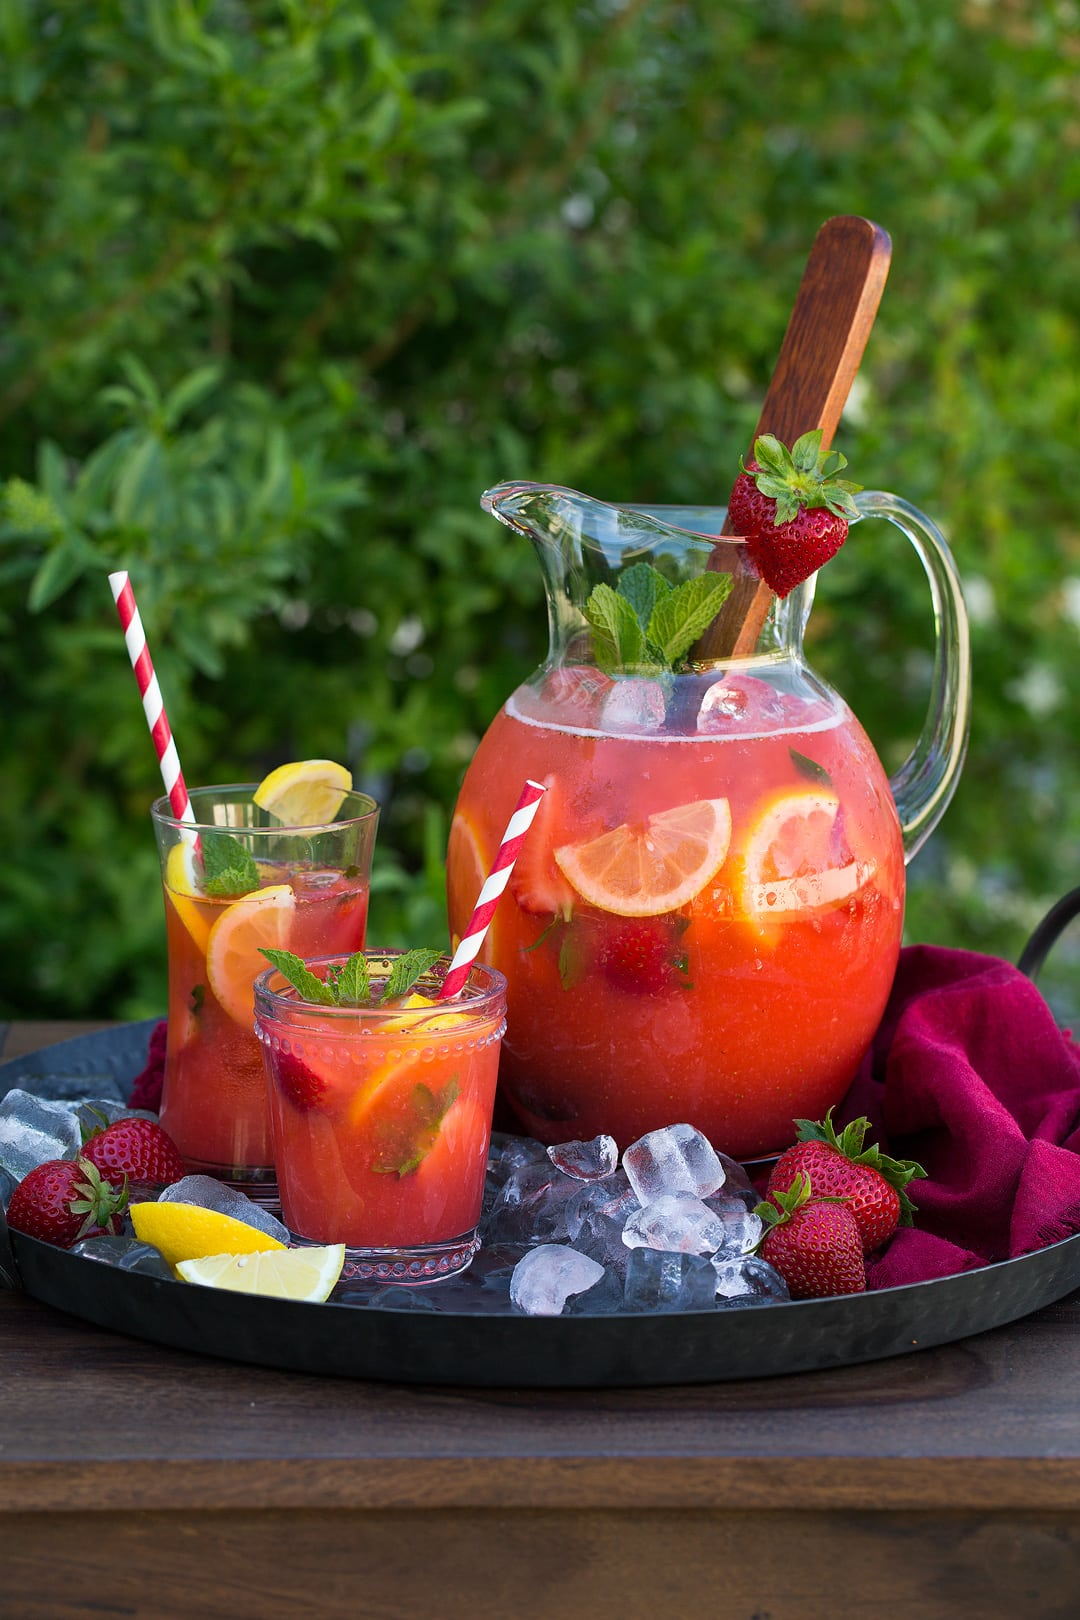 pitcher and two glasses of Strawberry Lemonade on tray